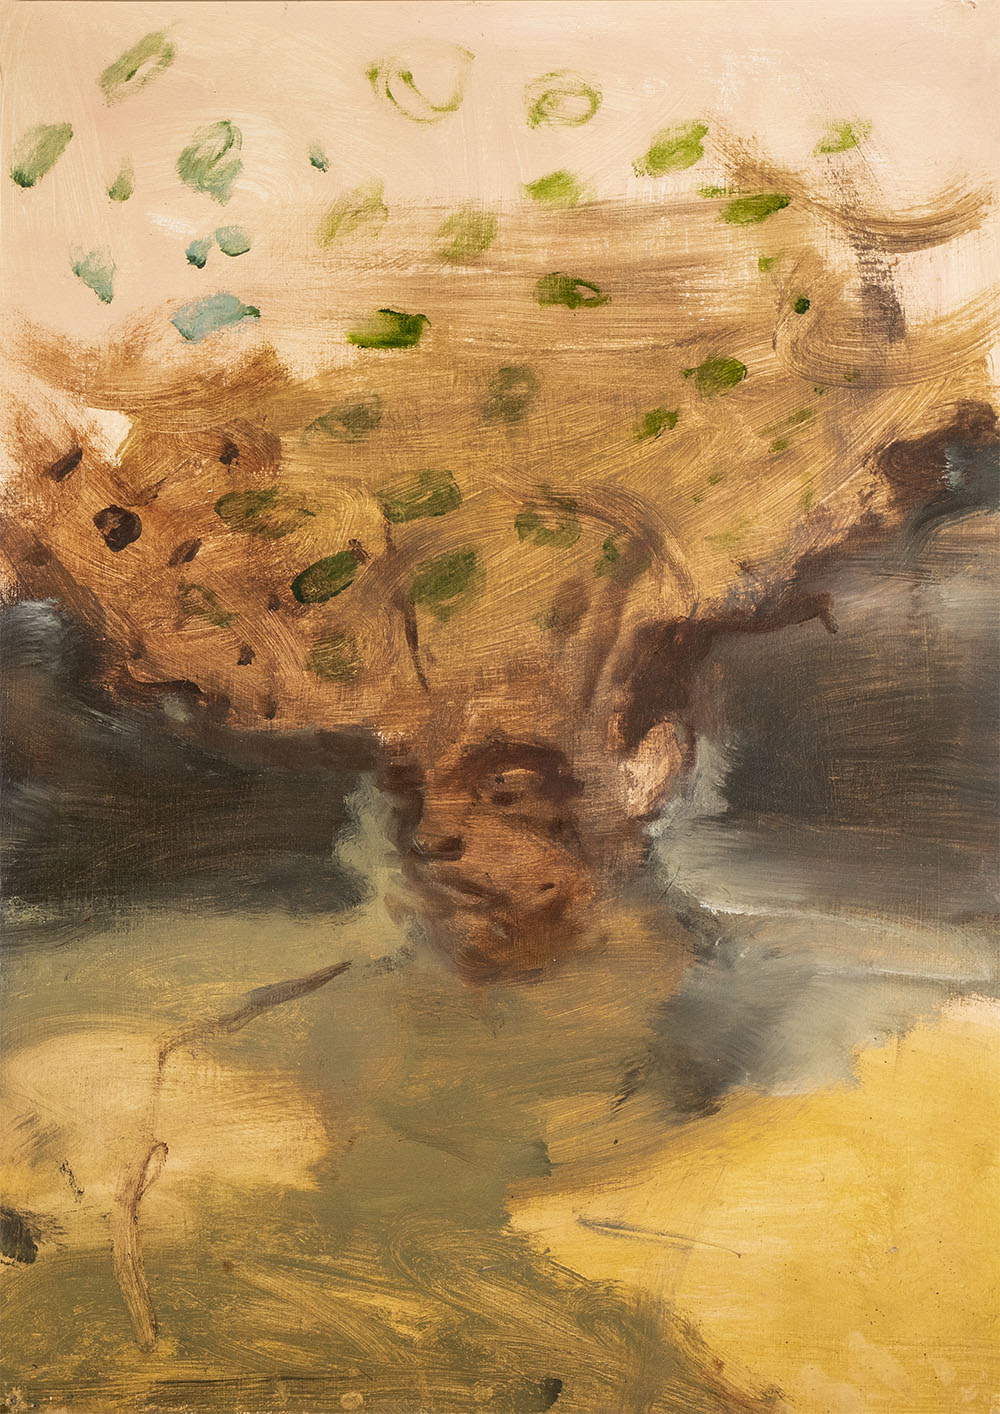 Nicholas Ives 'Sliding Worlds 4', 2018 .  420 x 594mm. Acrylic and oil on paper.